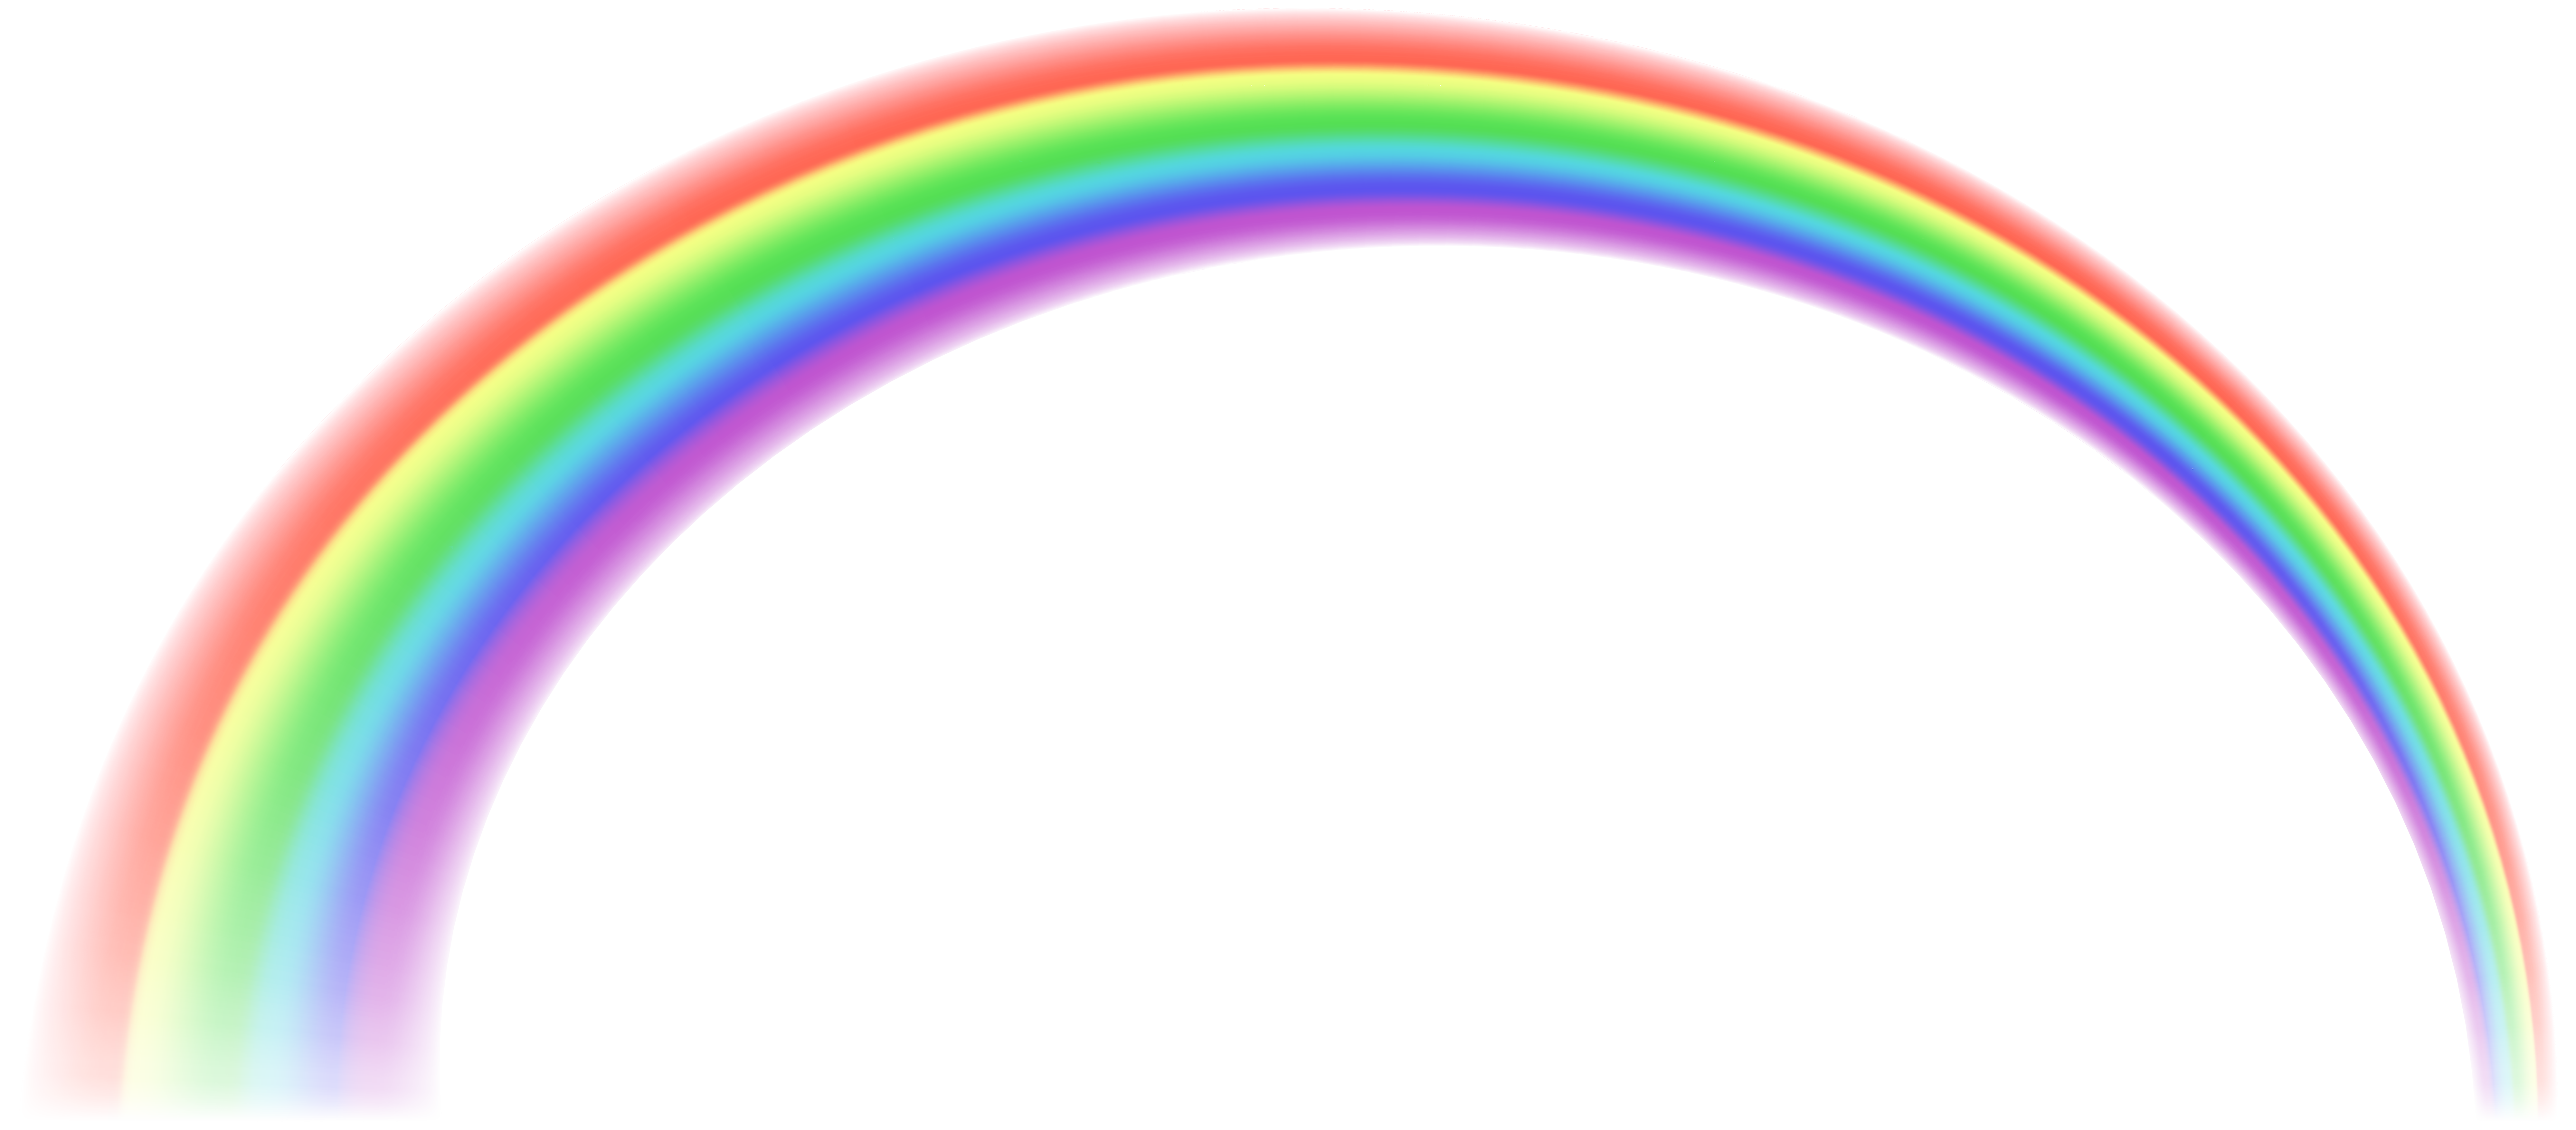 Rainbow png transparent background. Free clip art gallery